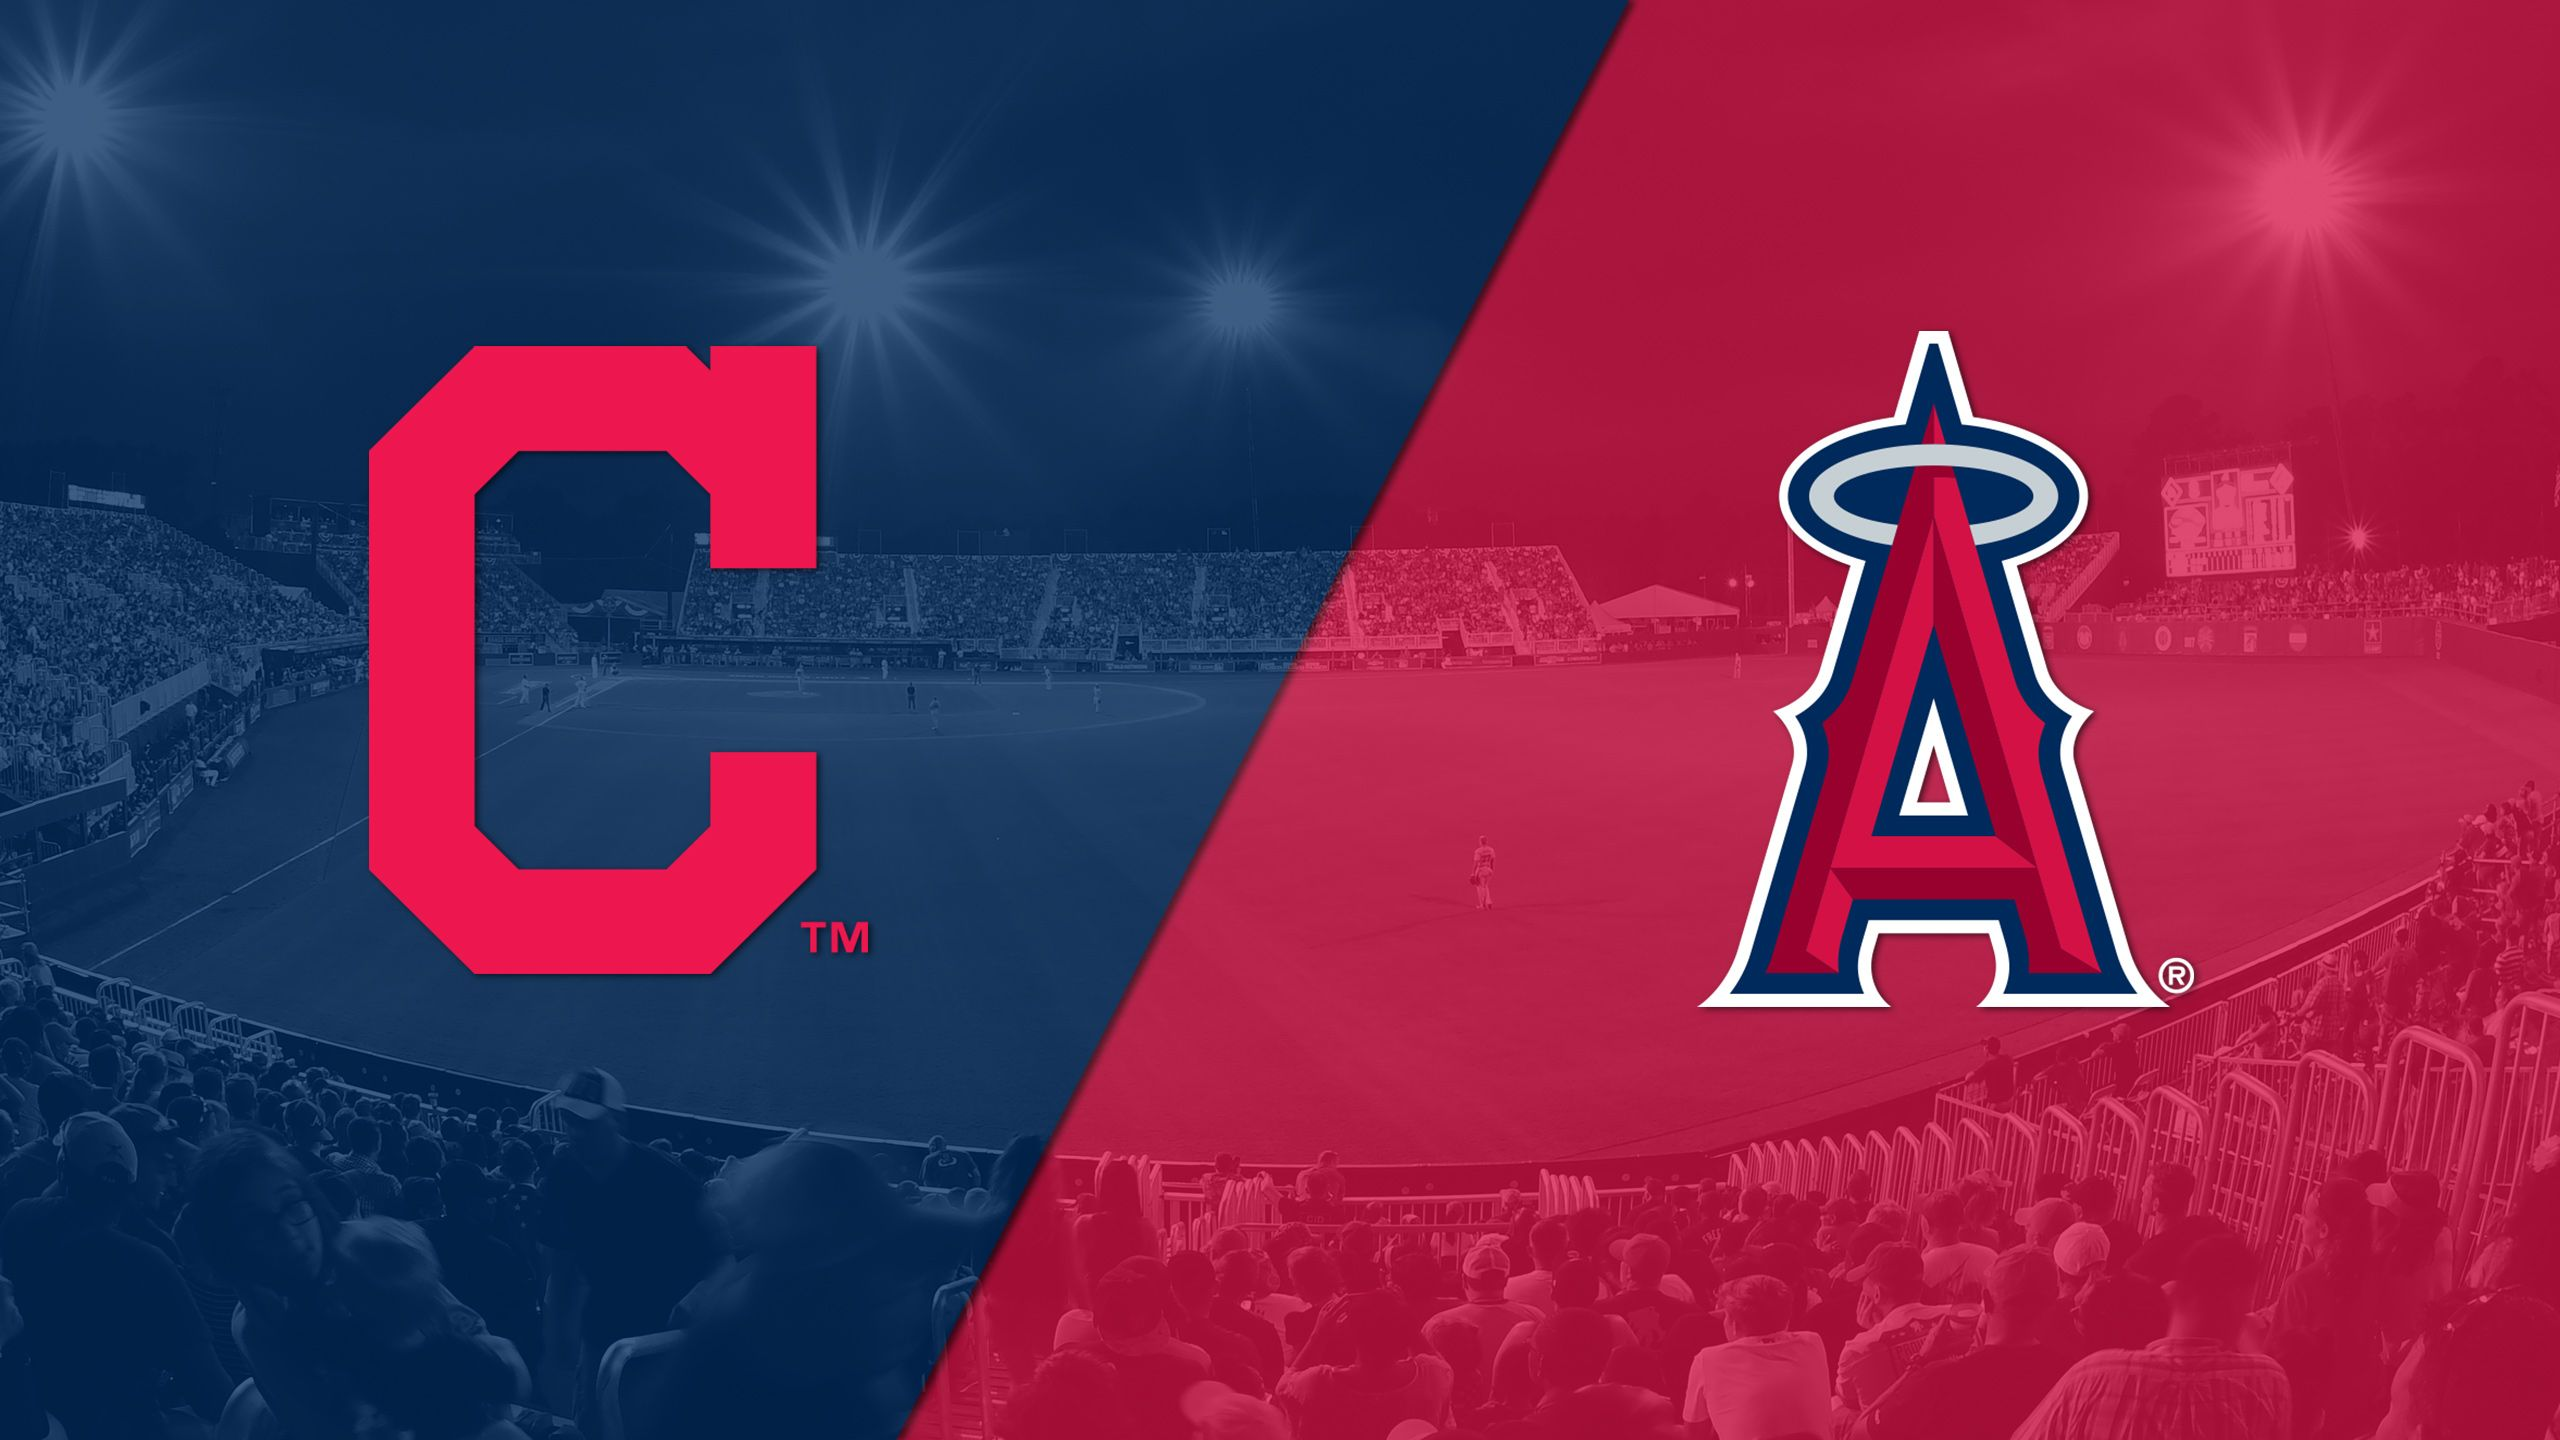 In Spanish - In Spanish - Cleveland Indians vs. Los Angeles Angels of Anaheim